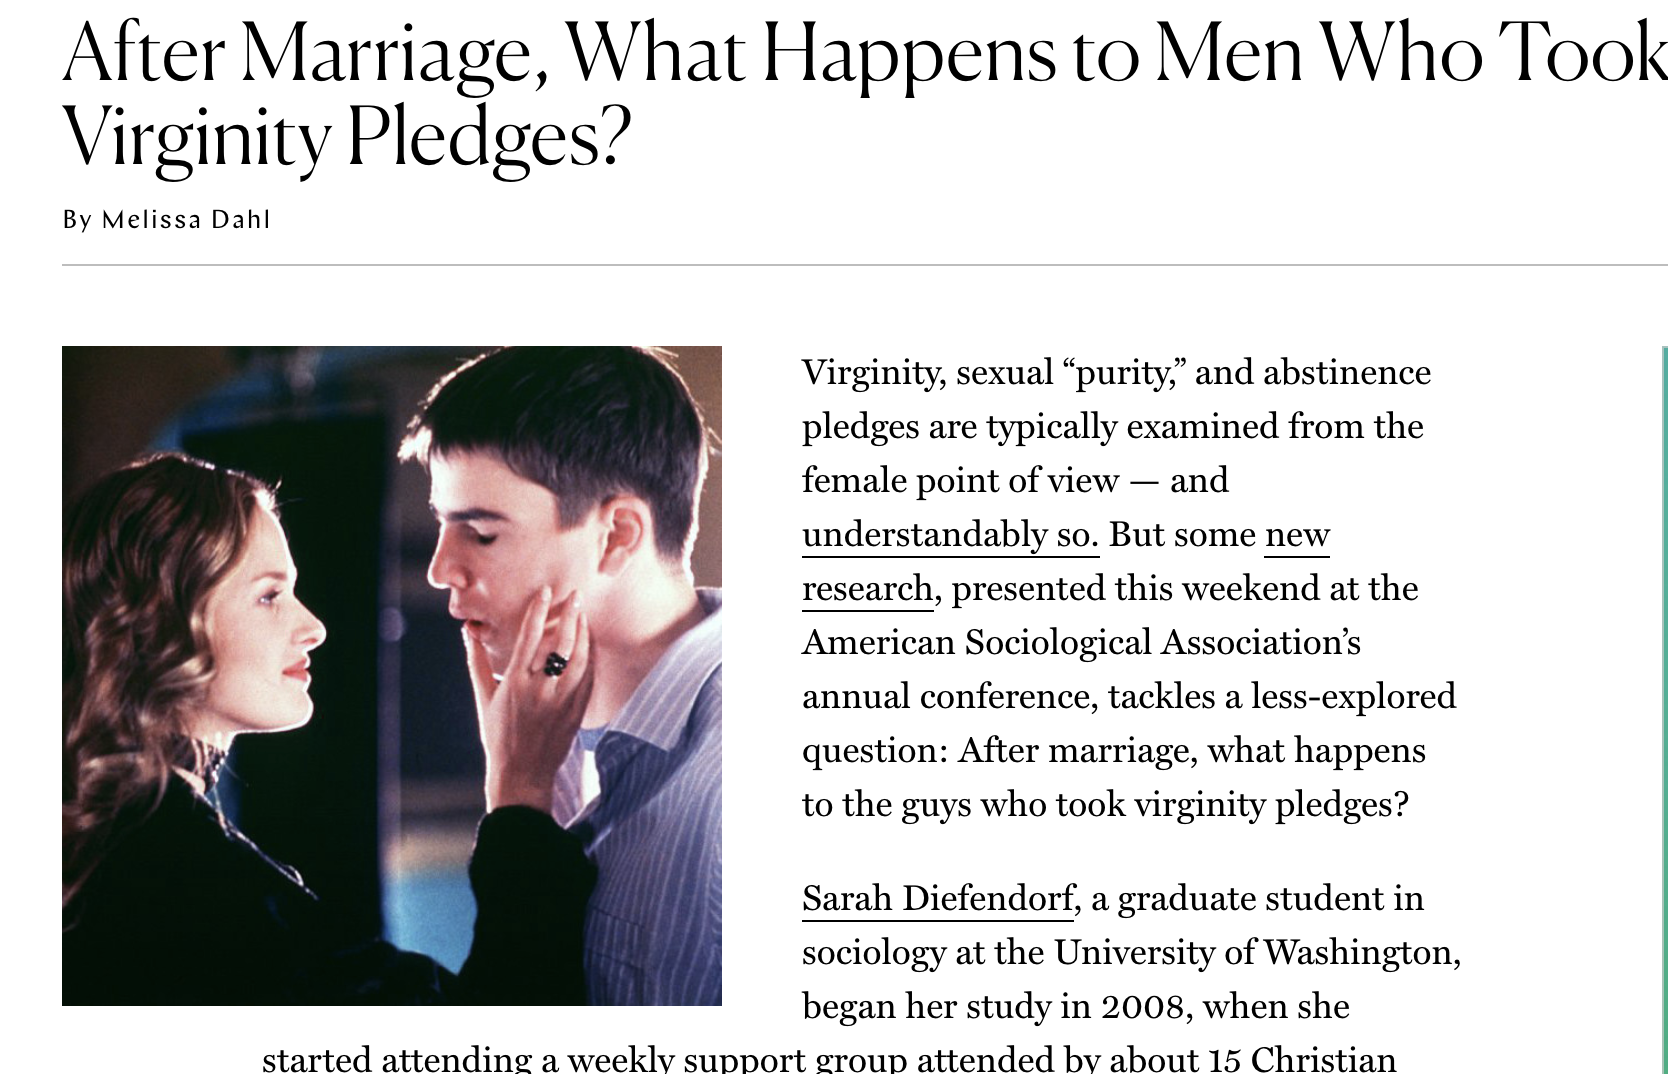 After Marriage, What Happens to Men Who Took Virginity Pledges?